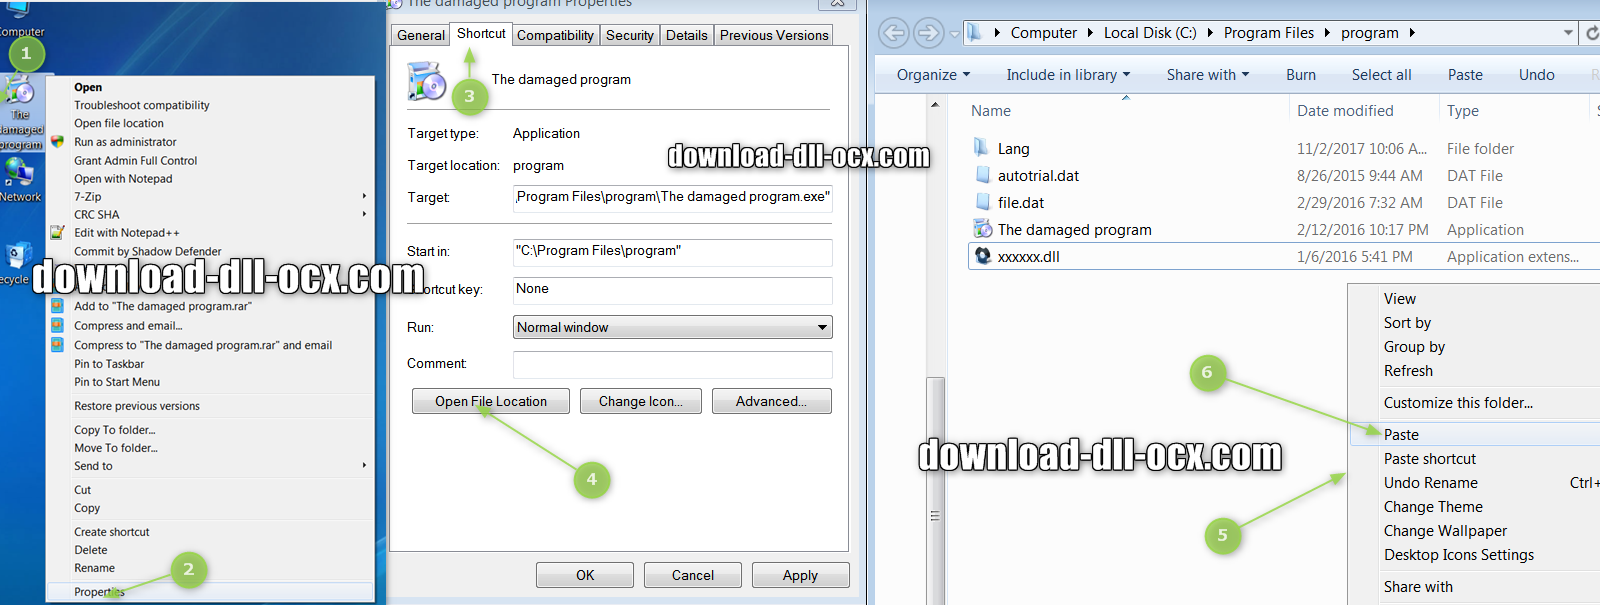 how to install clusapi.dll file? for fix missing